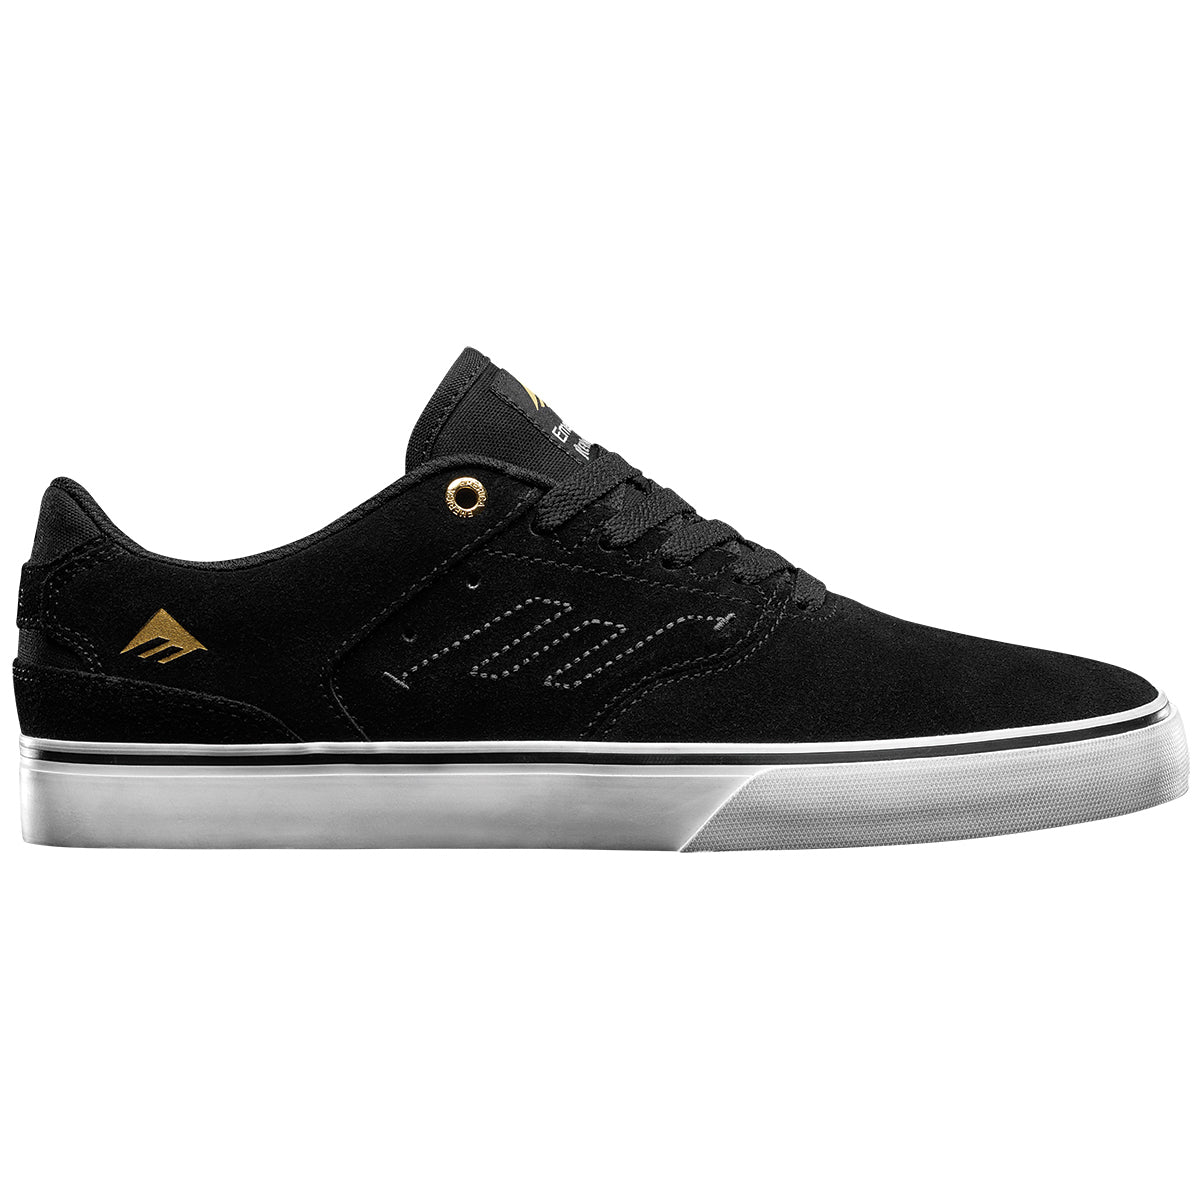 Emerica The Reynolds Low Vulc Men's Shoes Footwear - Black/White